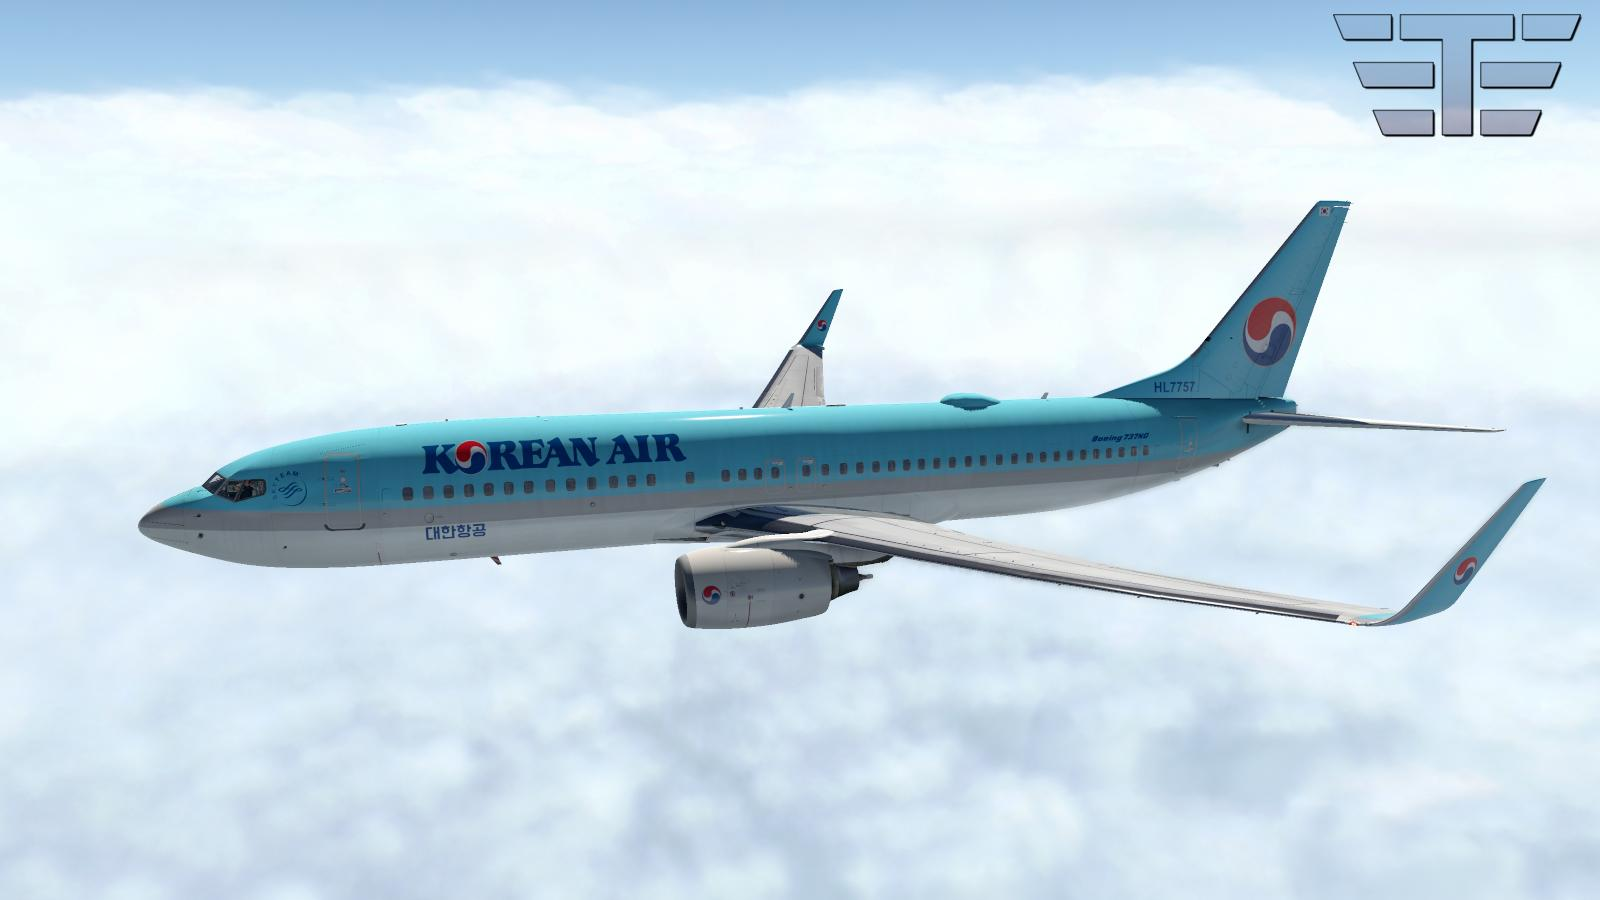 Zibo 737-800 - Korean Air - HL7757 - Aircraft Skins